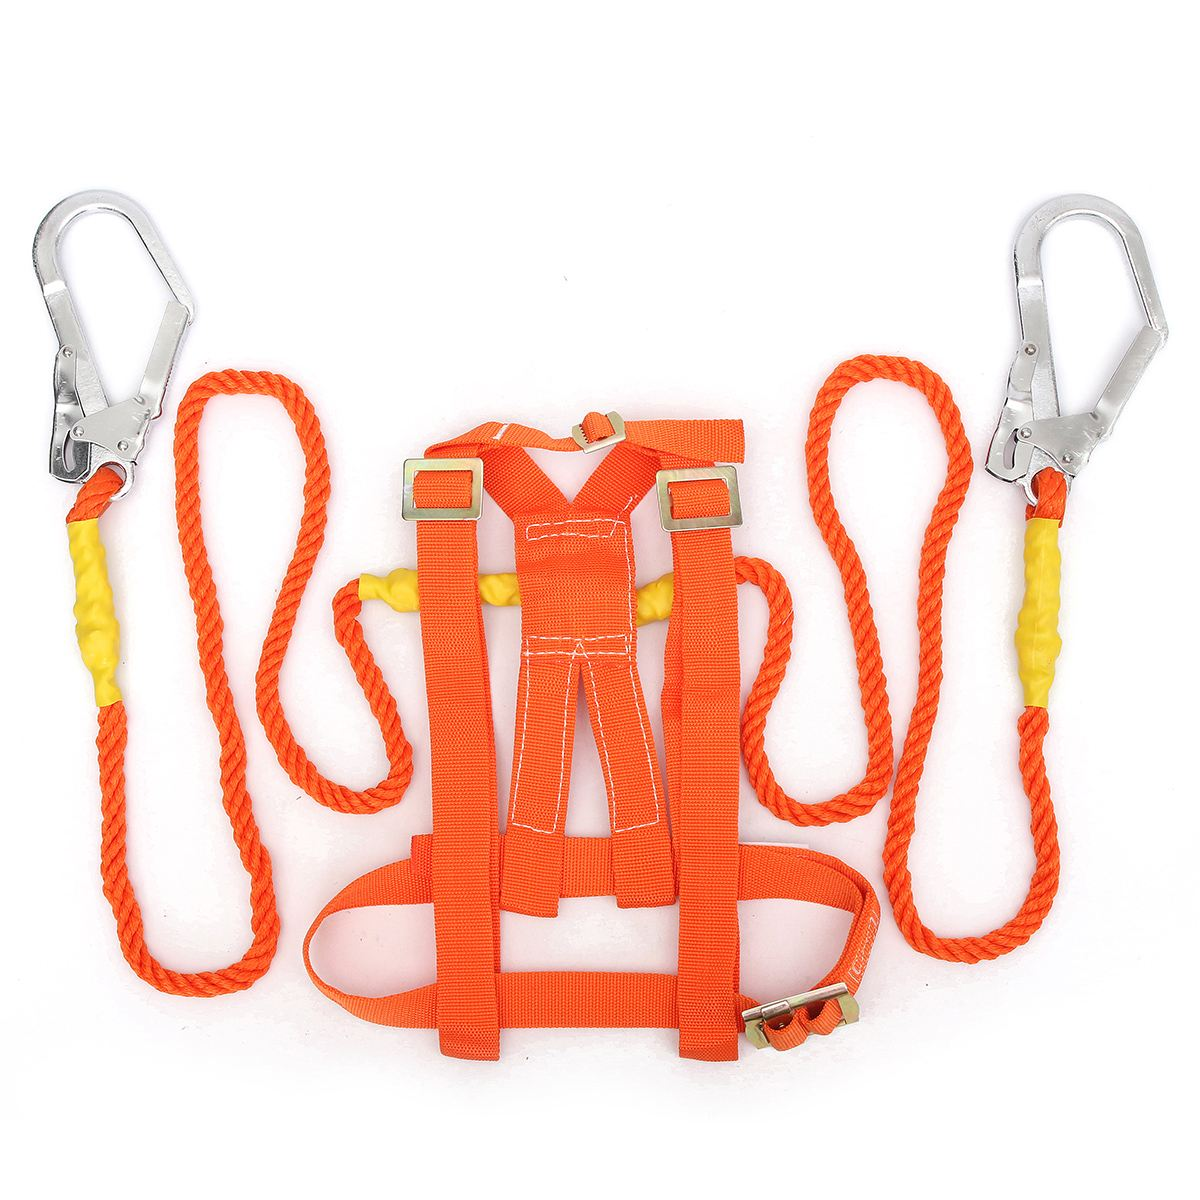 Safurance Outdoor Climbing Climb Mountain Rope Safety Waist Belt Protection Equipment Workplace Safety Harness outdoor feet aid climb risers mountaineer climbing ascender tool anti dropping device protector 8 13mm rope foot riser equipment